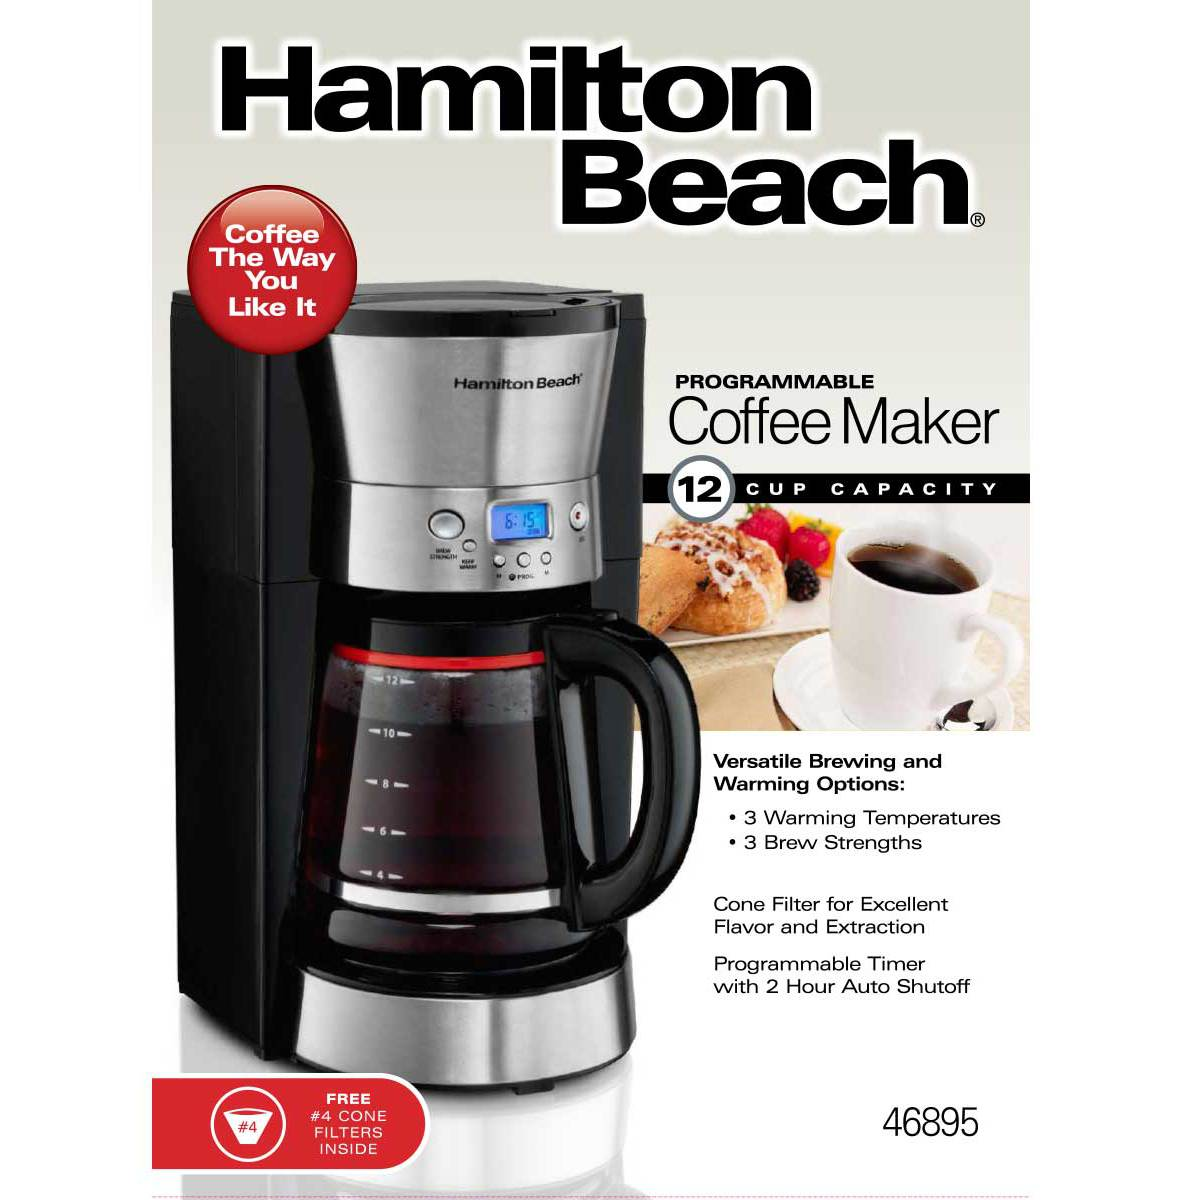 Programmable Coffee Maker (46895)